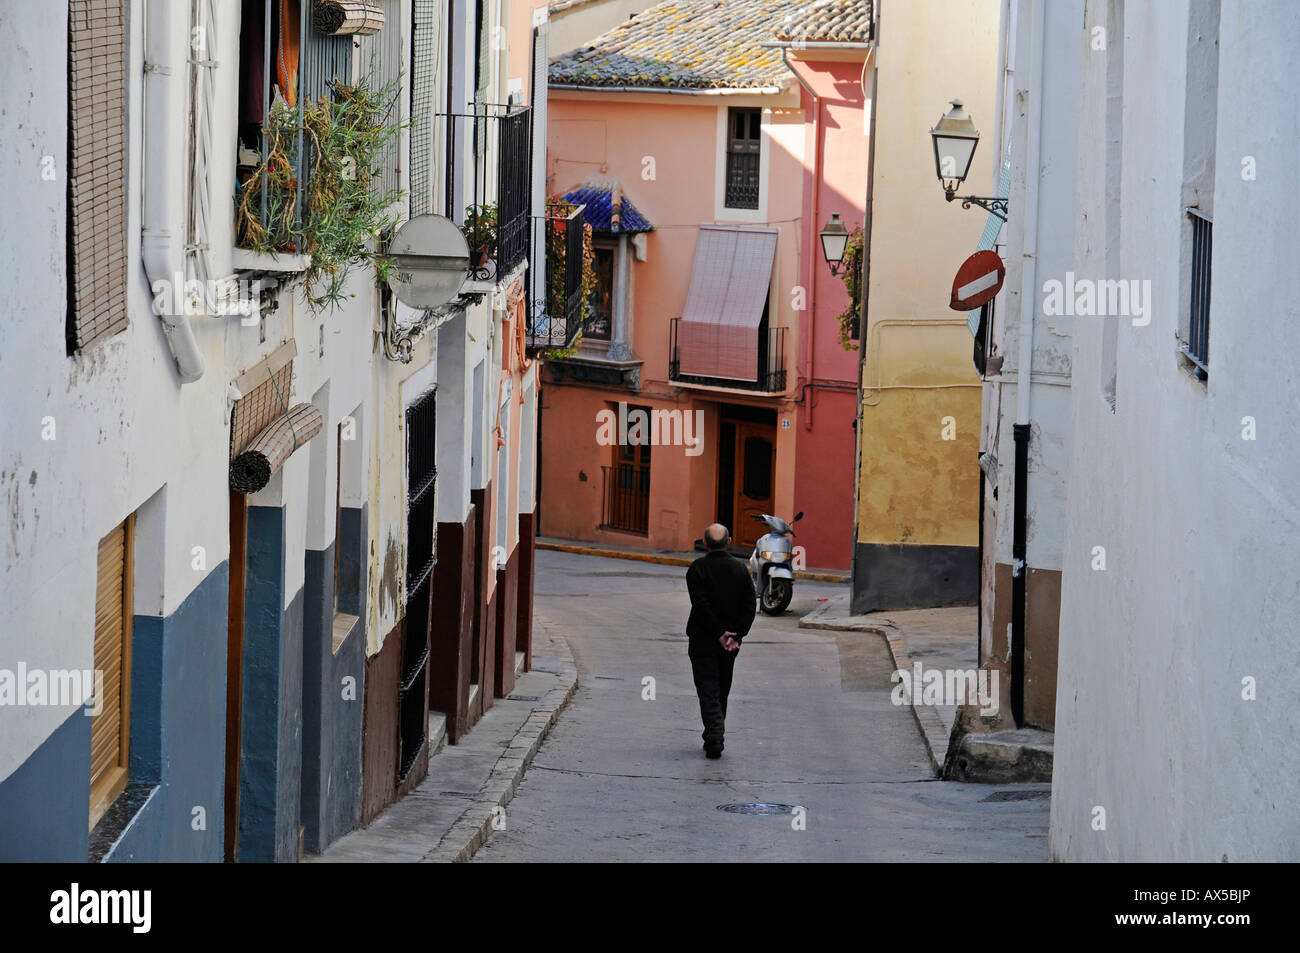 Man walking down a narrow street in the historic centre of Xàtiva (Játiva), Valencia, Spain, Europe - Stock Image